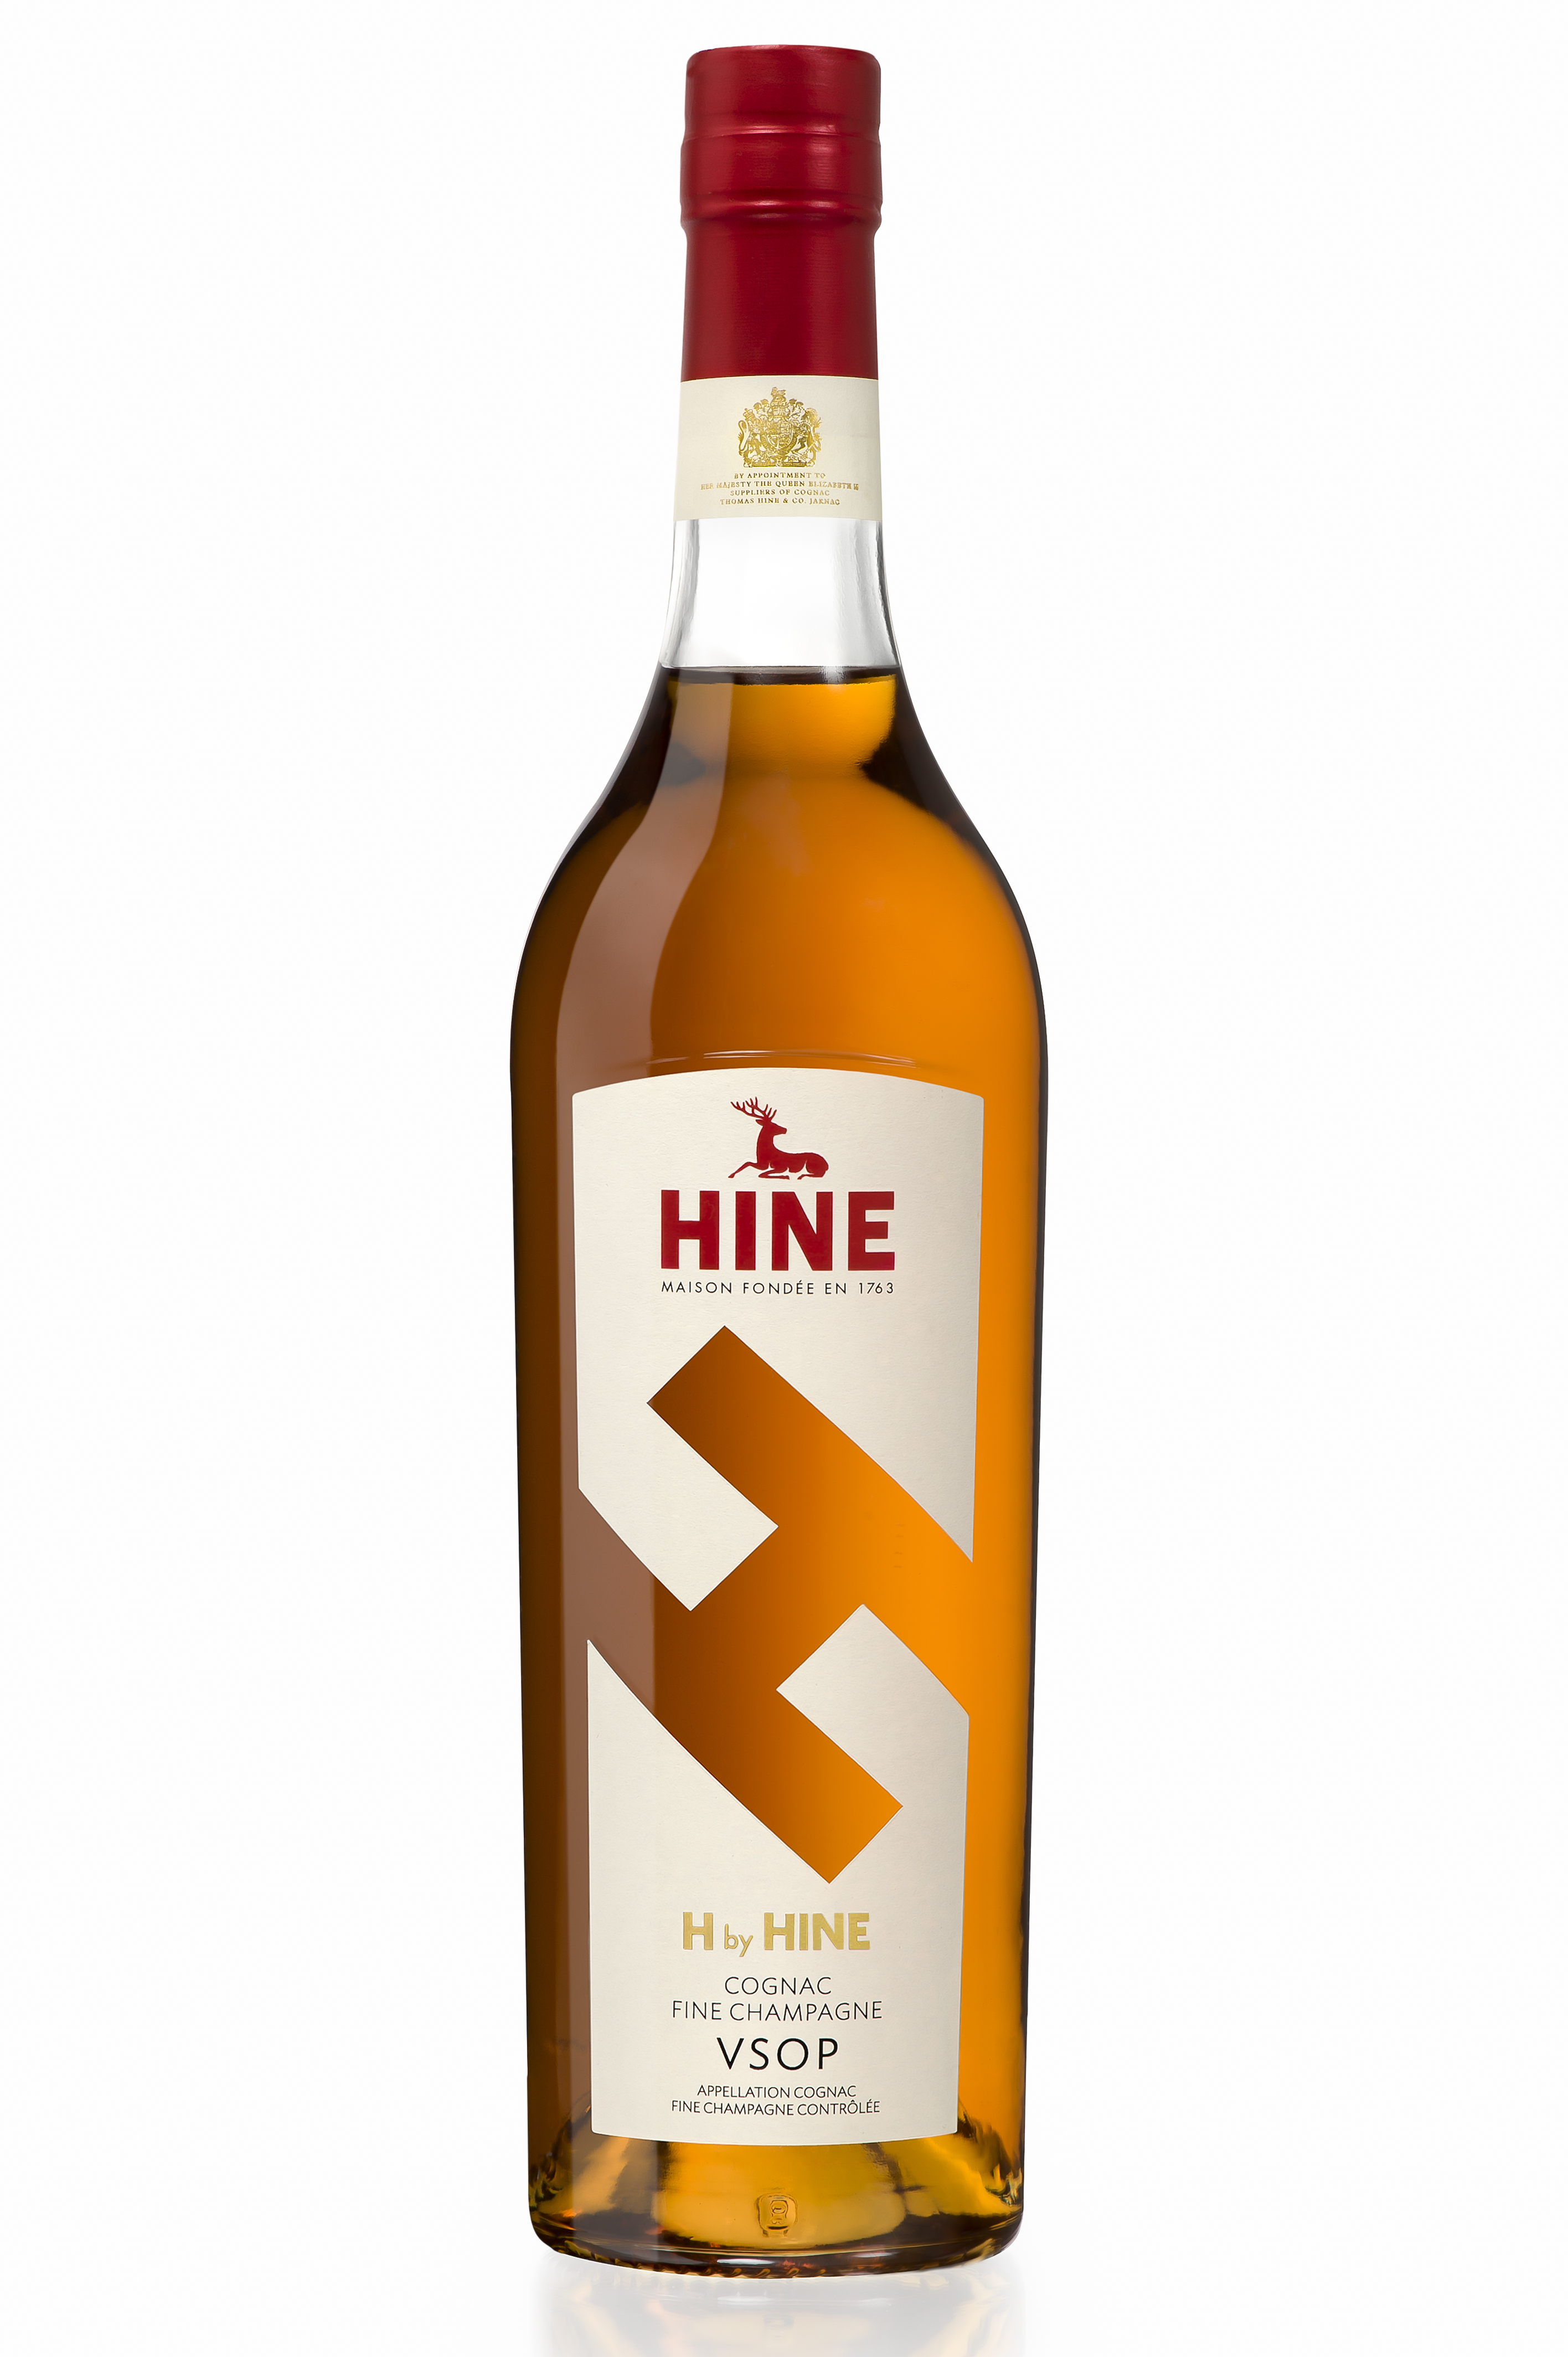 H by Hine VSOP Fine Champagne Cognac